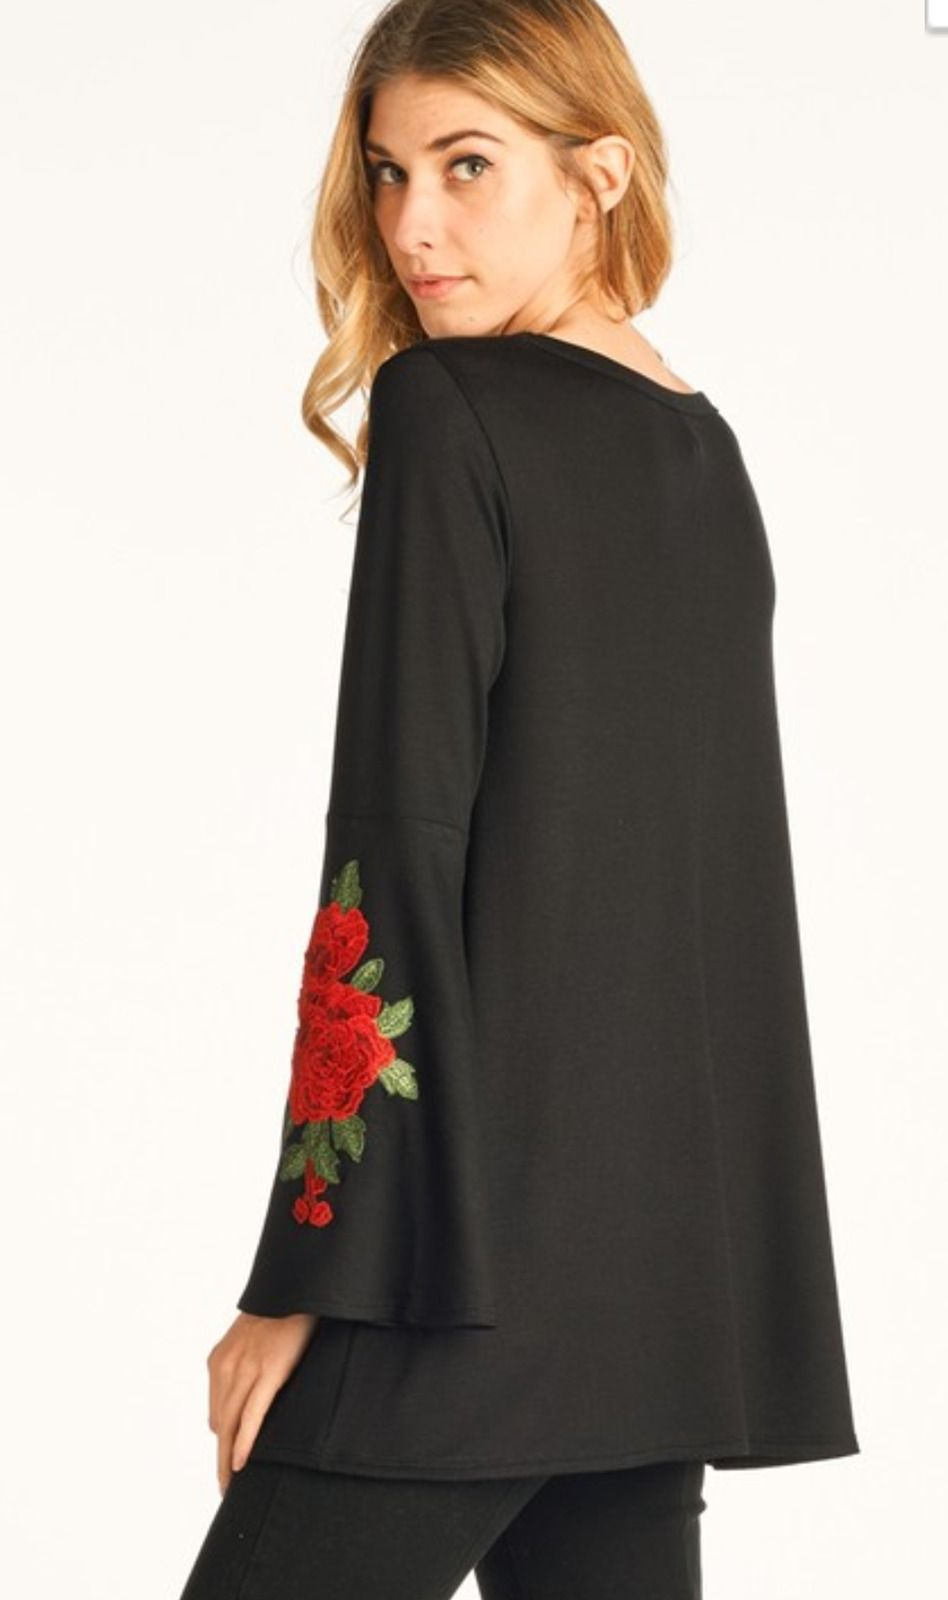 Cowgirl gypsy boho red rose applique bell sleeve black tunic top